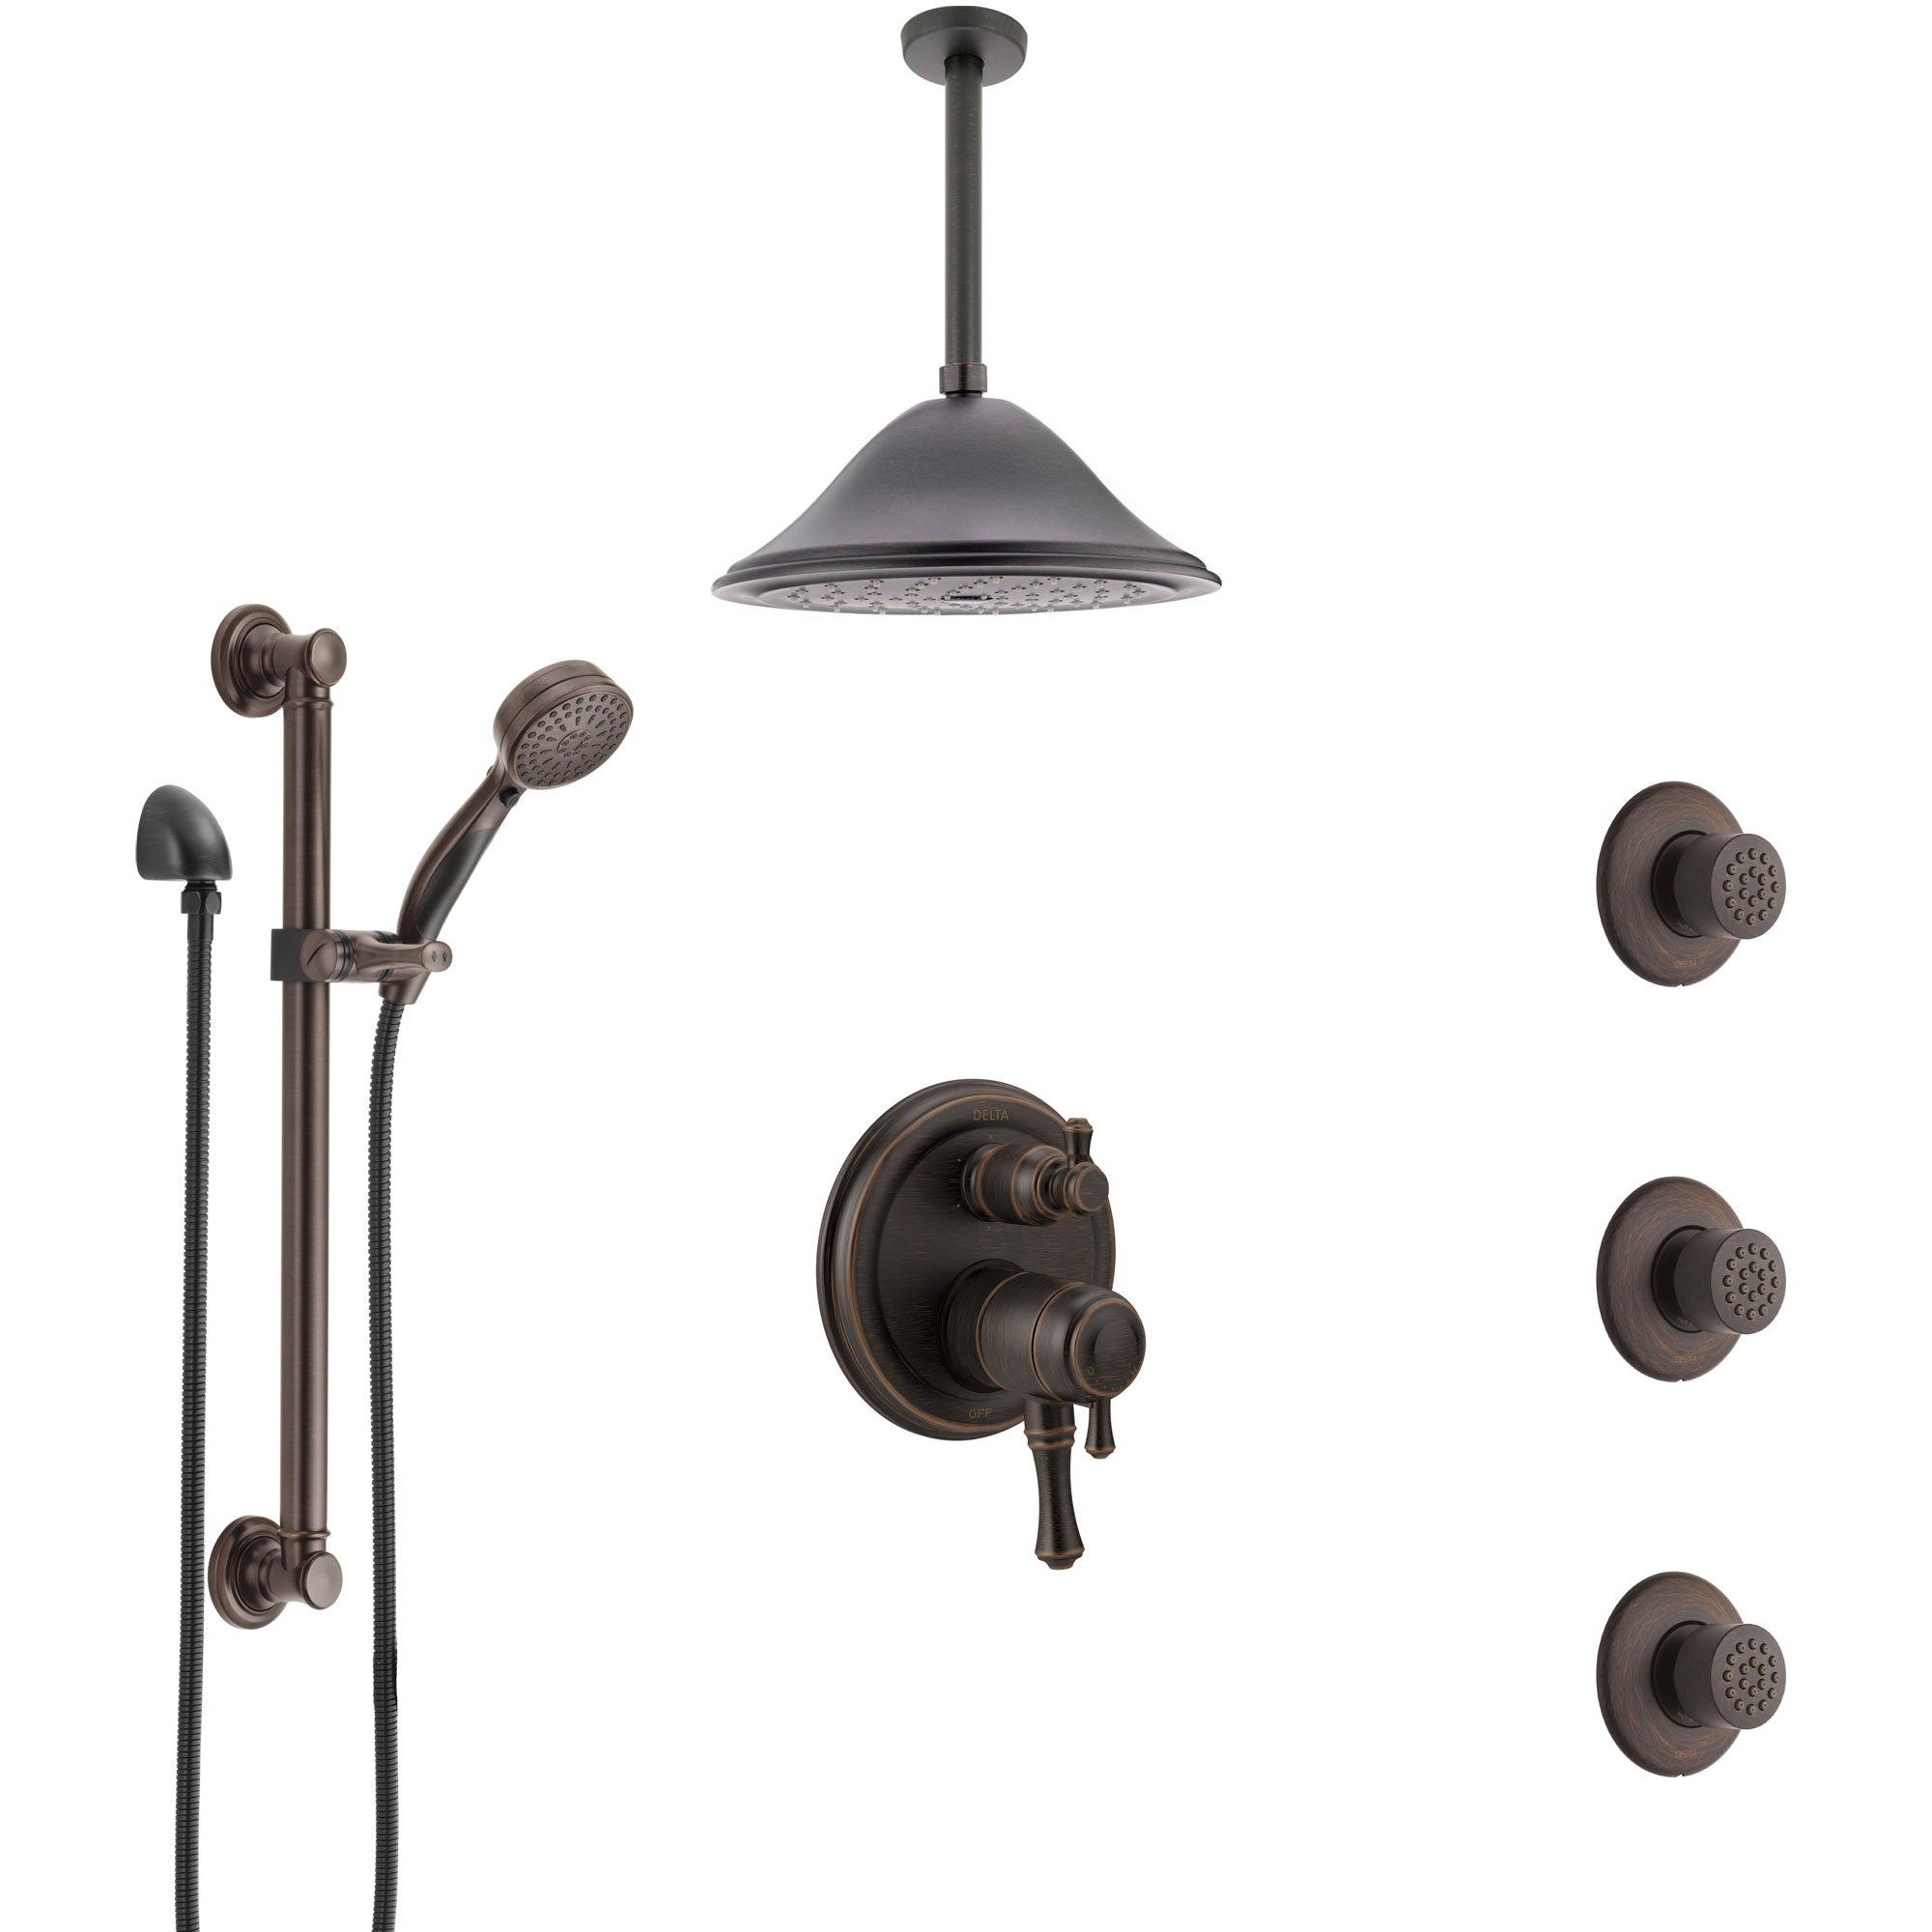 Delta Cassidy Venetian Bronze Dual Control Handle Shower System, Integrated Diverter, Ceiling Showerhead, 3 Body Jets, Grab Bar Hand Spray SS27997RB8